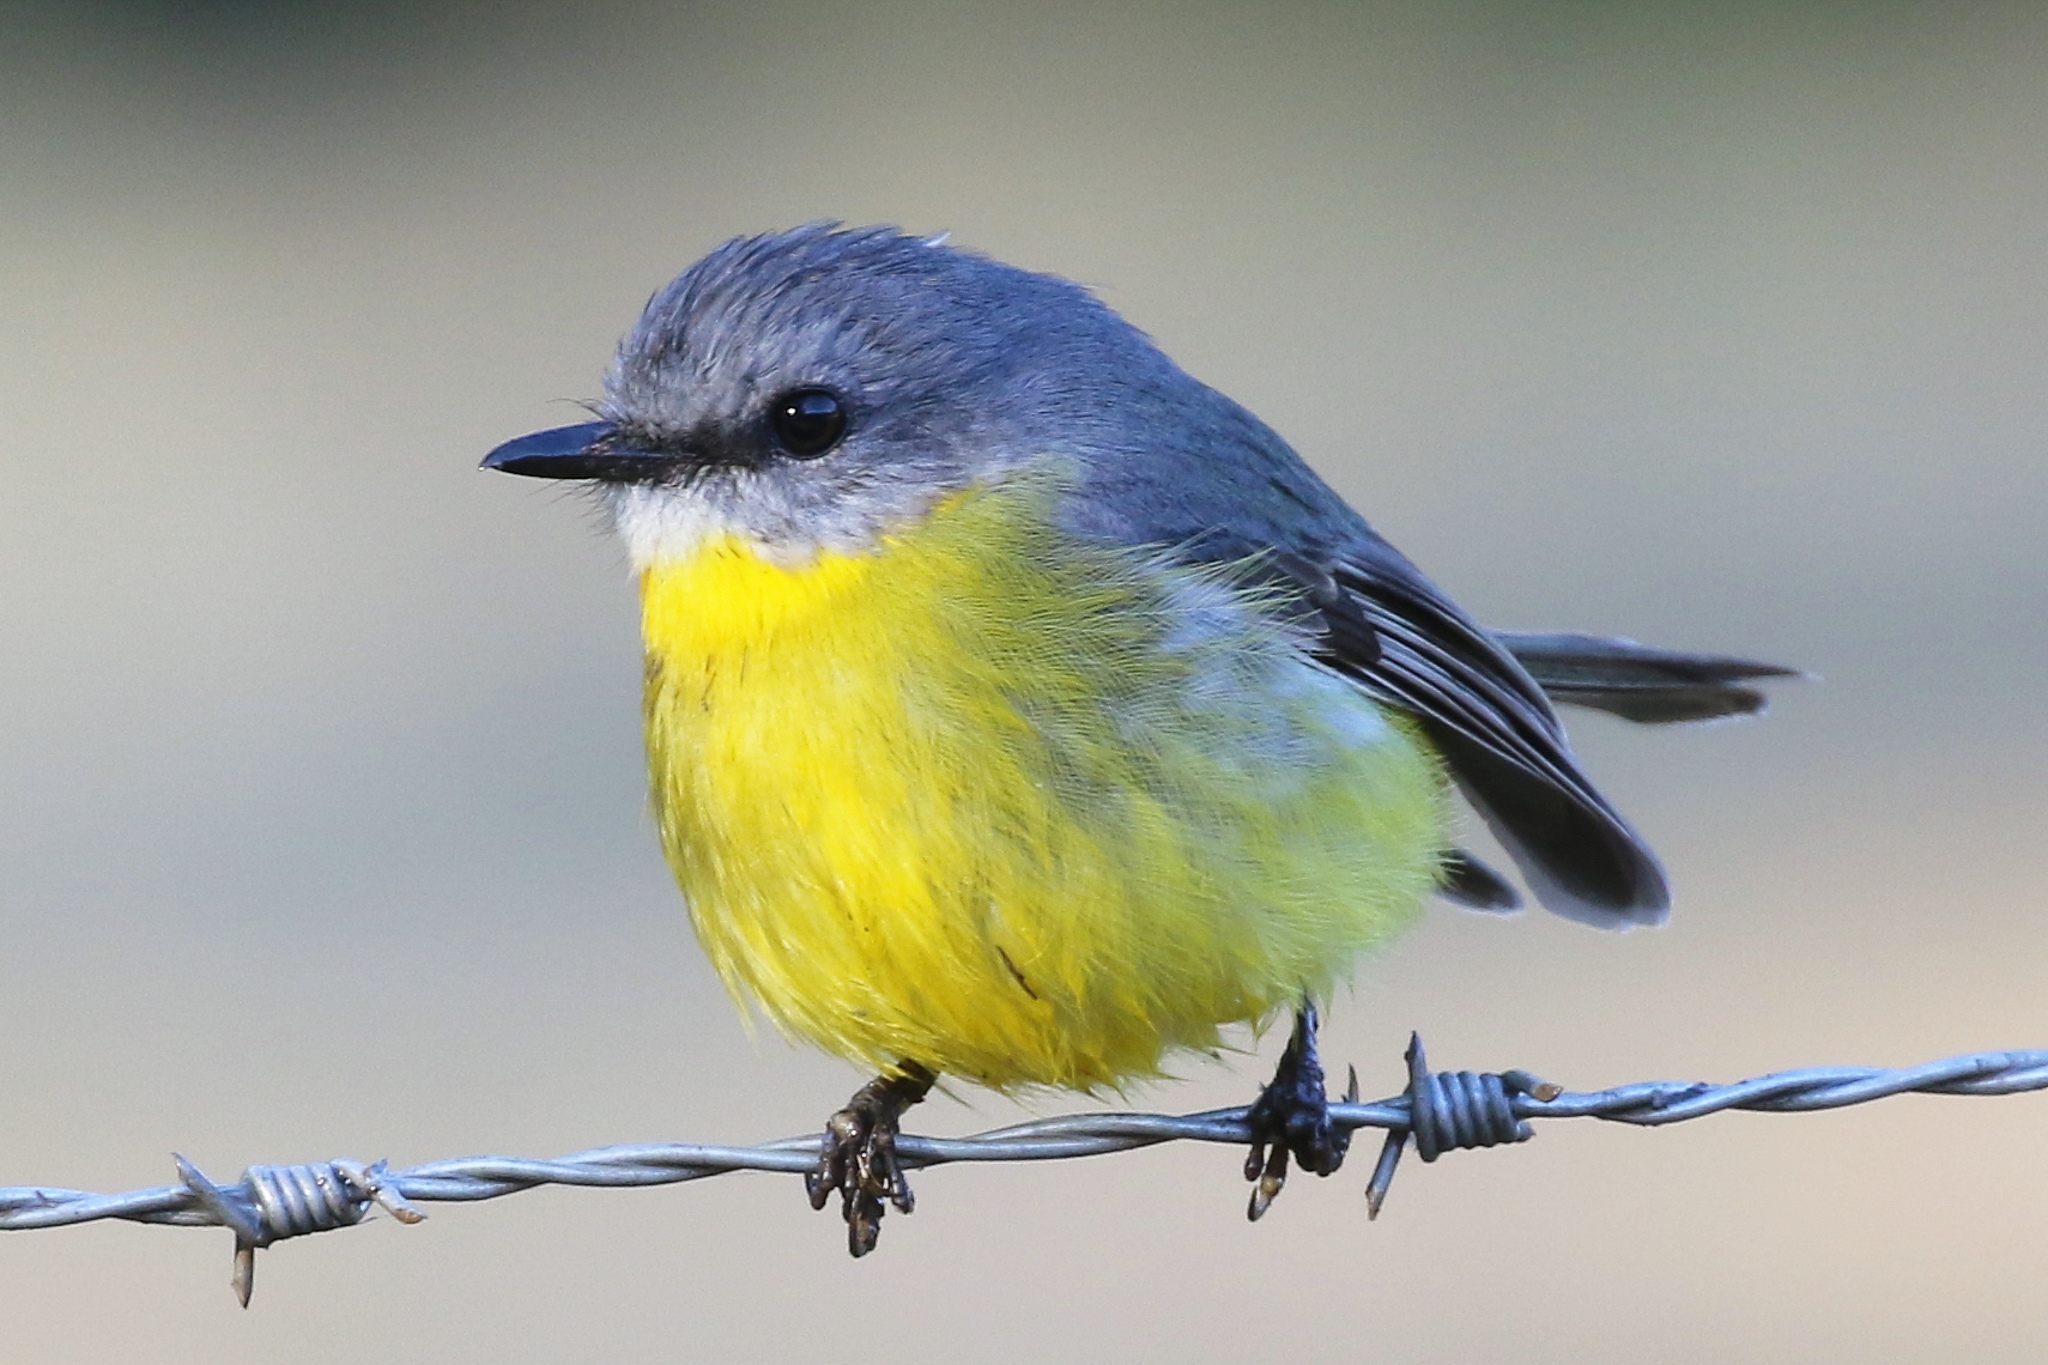 Eastern Yellow Robins (16 cm) are friendly birds found in Australia's eastern states. The male and female have similar colouring.